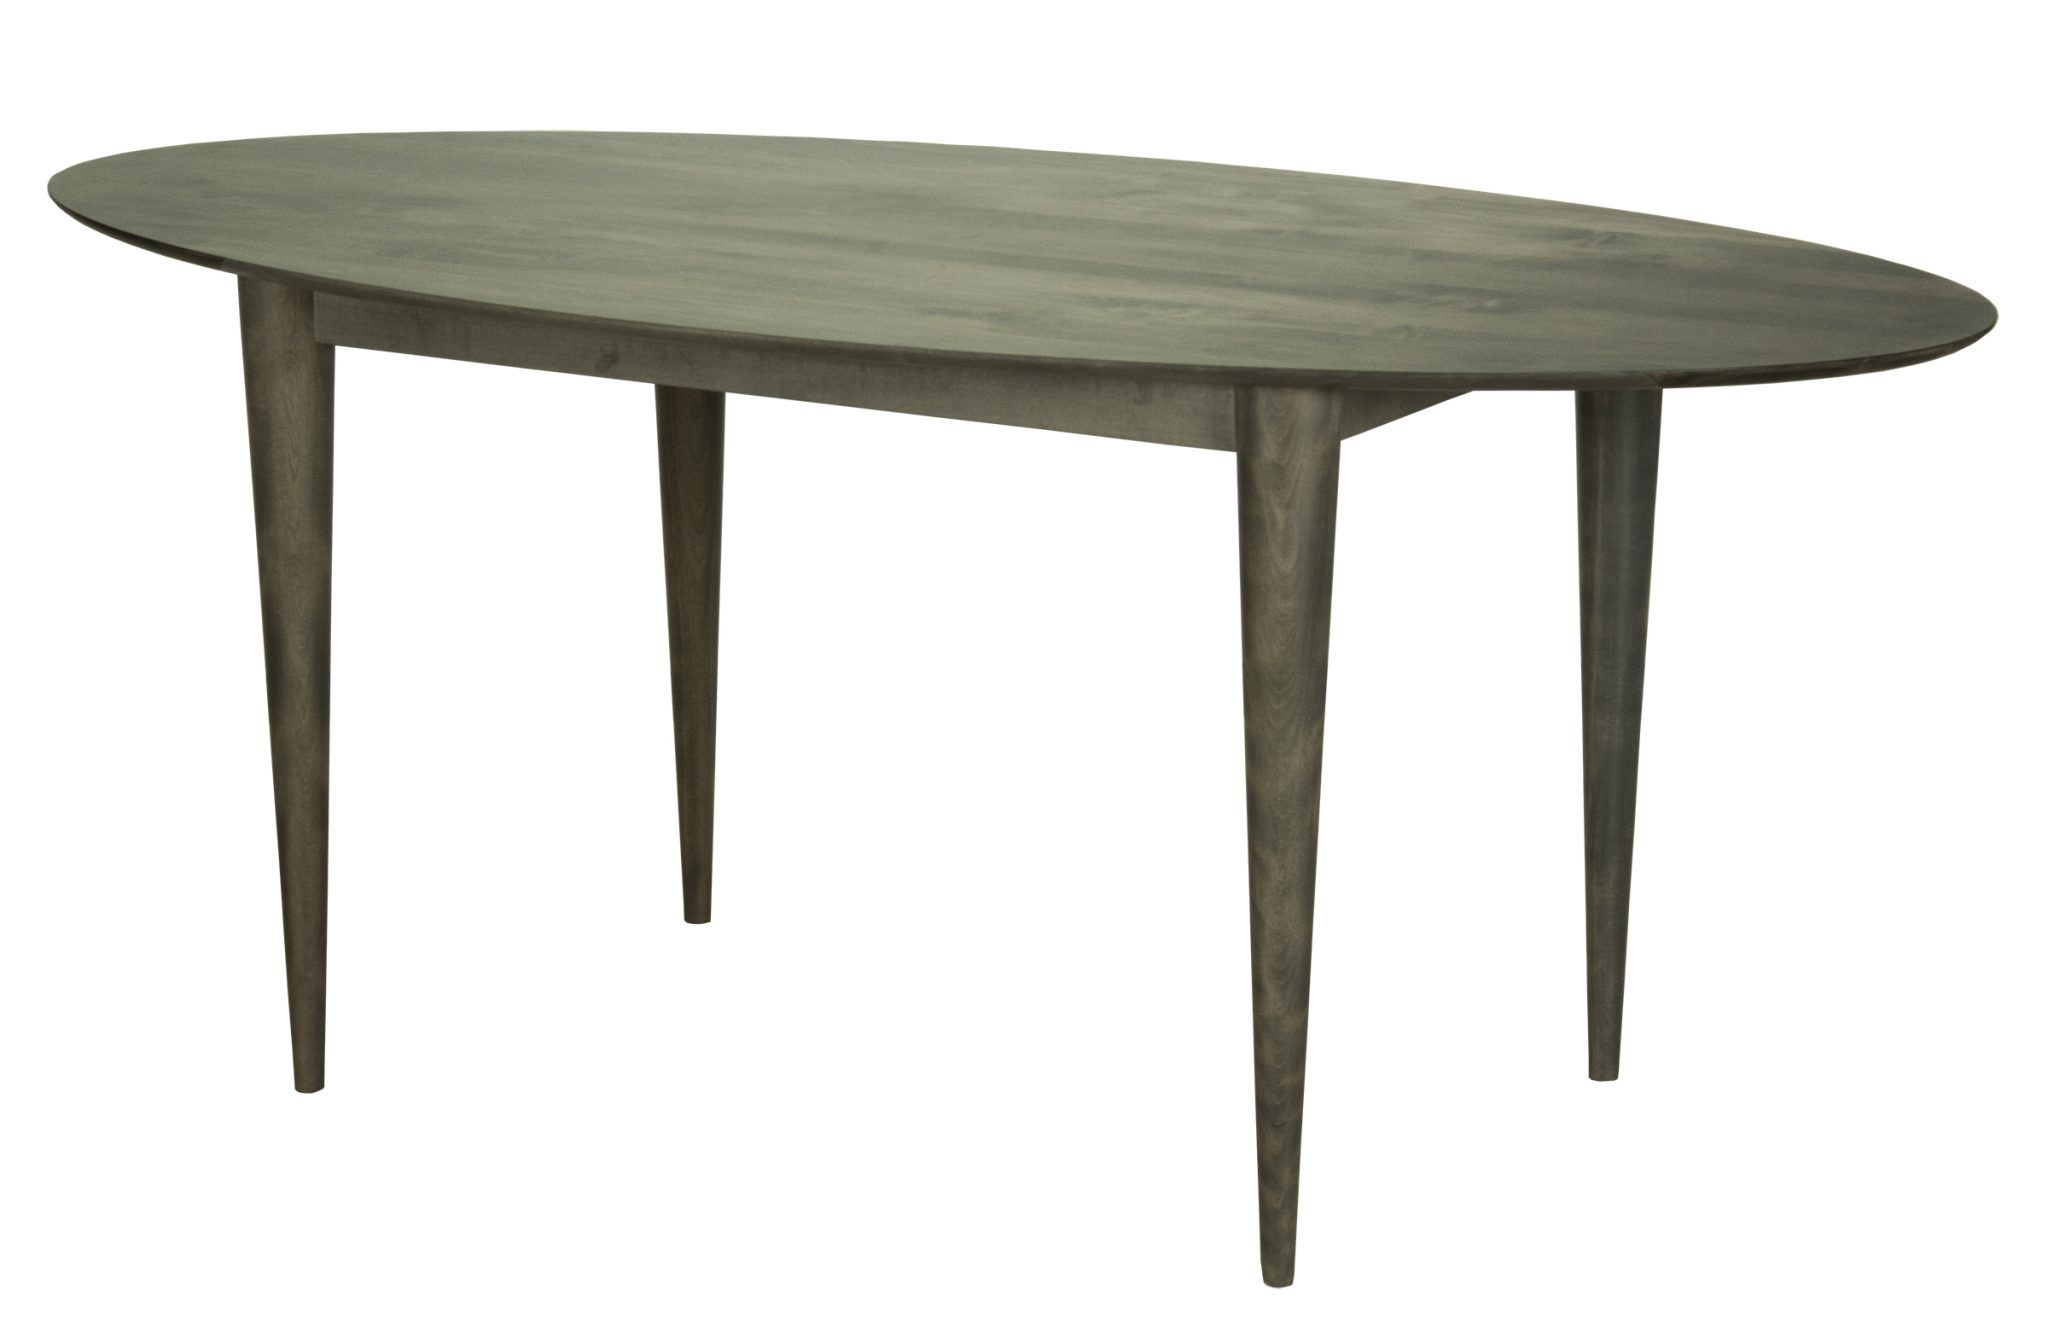 Cona Ellipse Dining Table